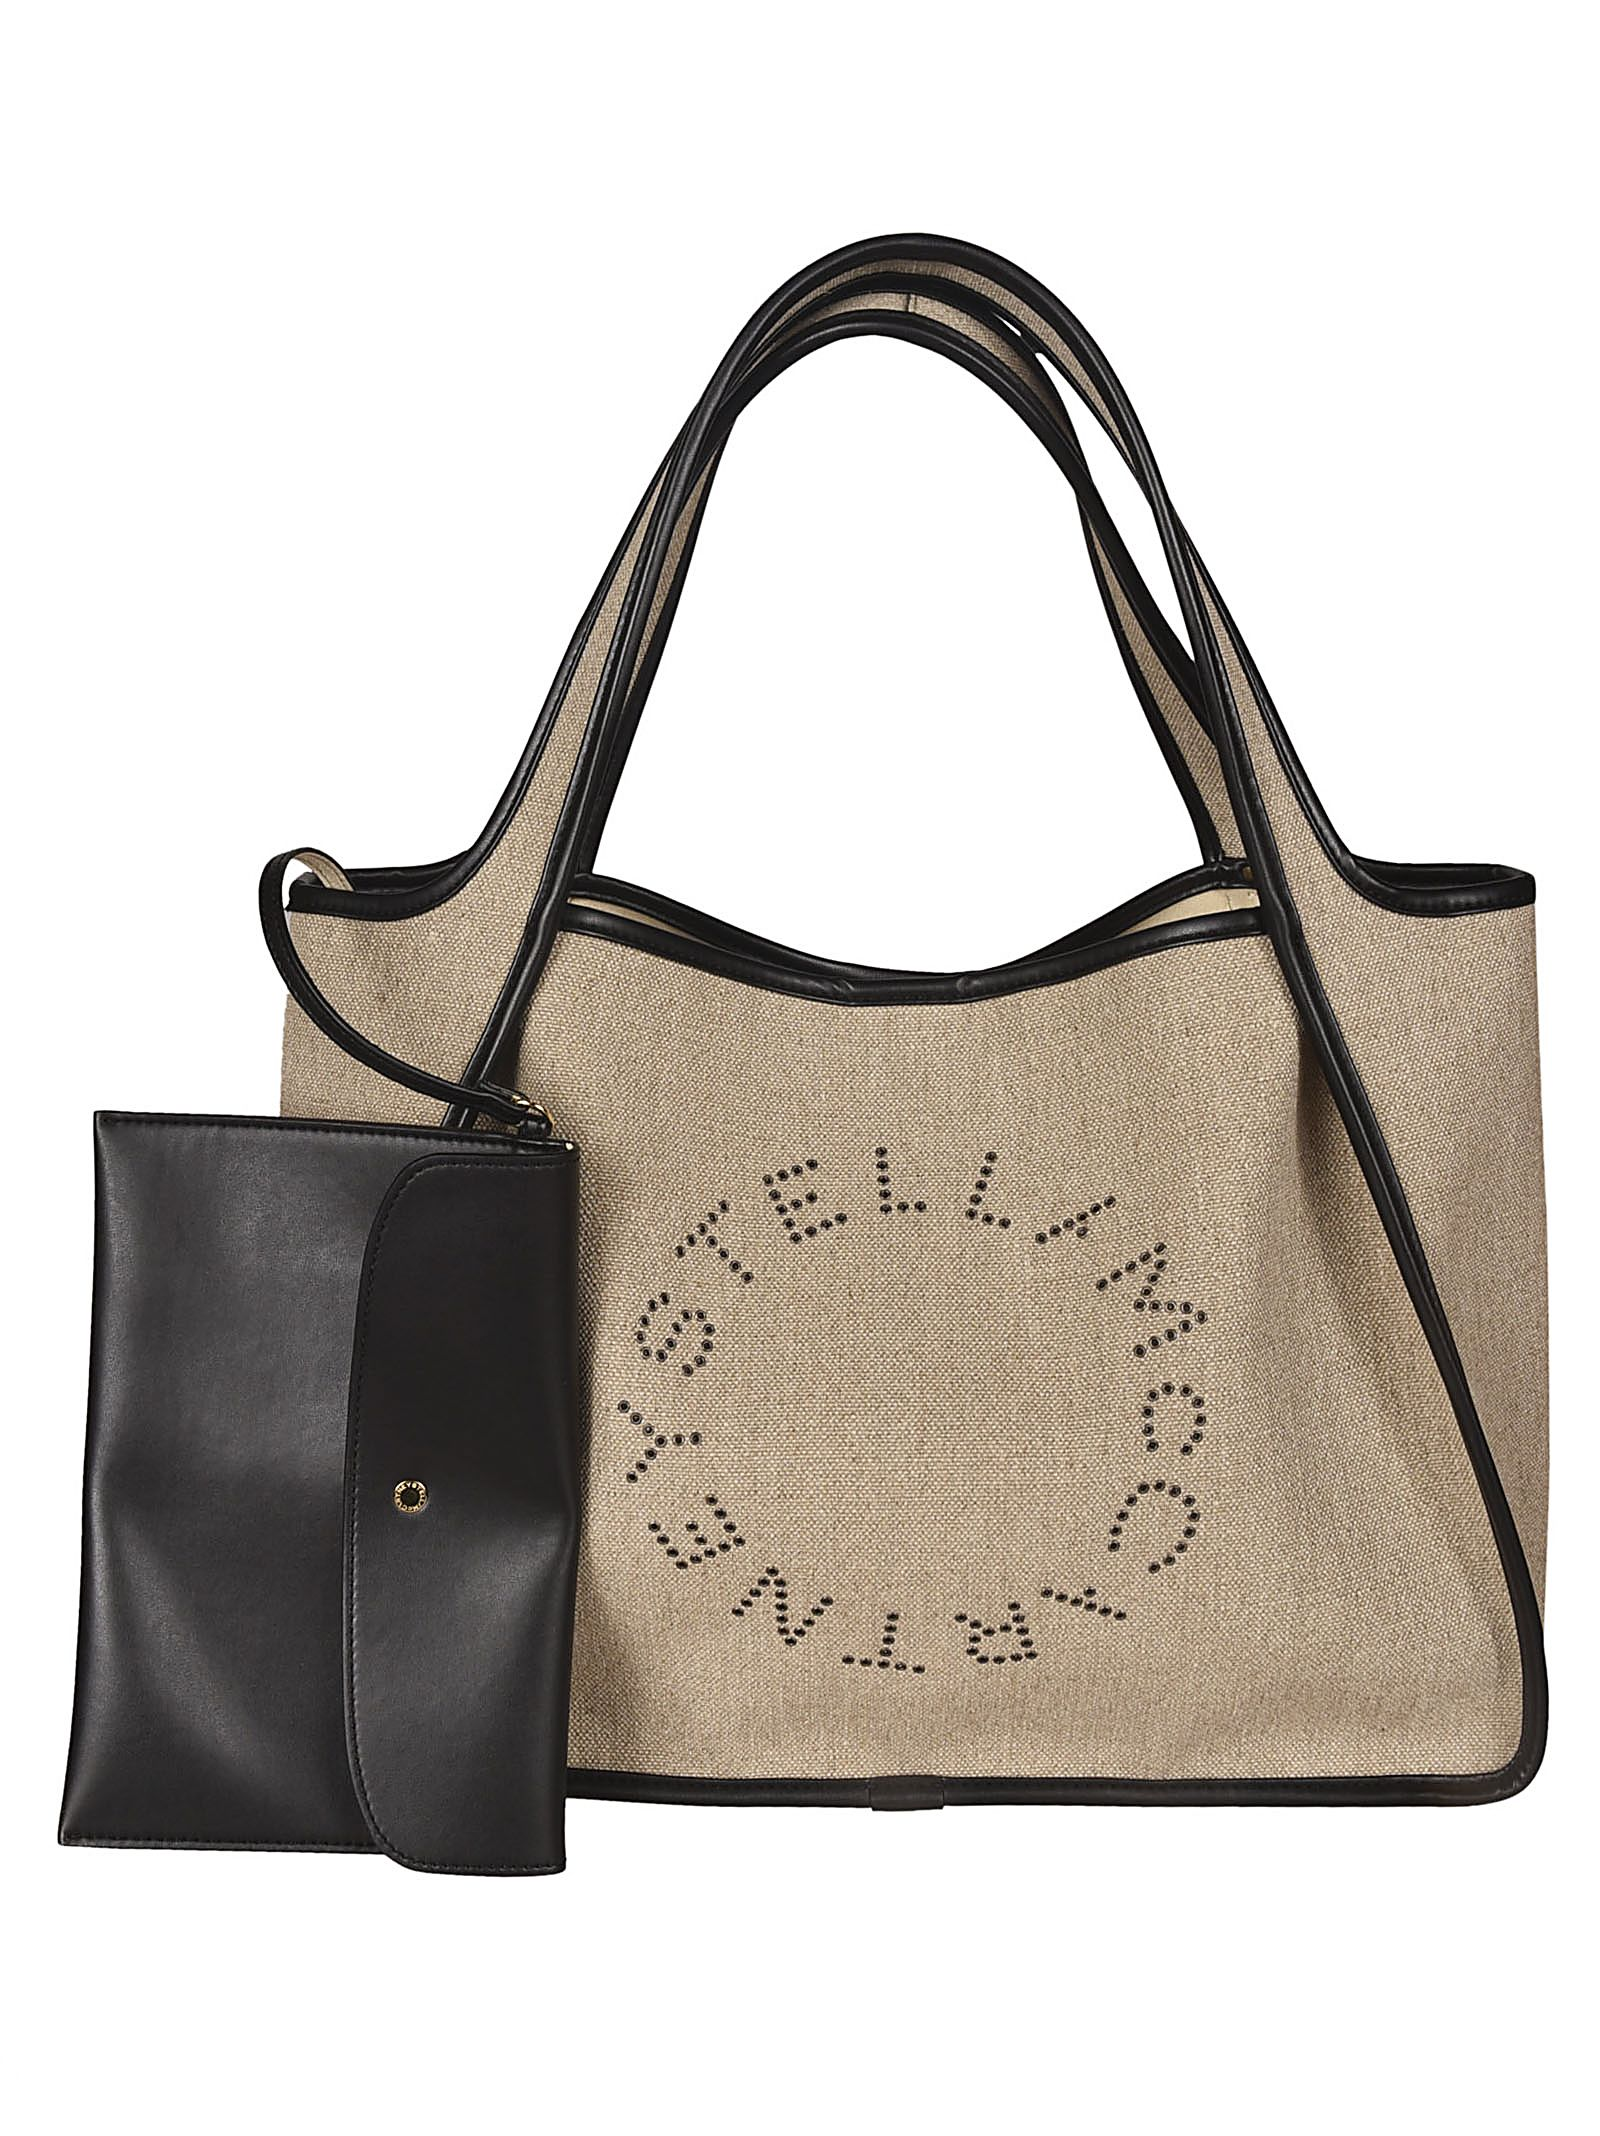 aee574fab8 Stella Mccartney Logo Tote Sale | Stanford Center for Opportunity ...